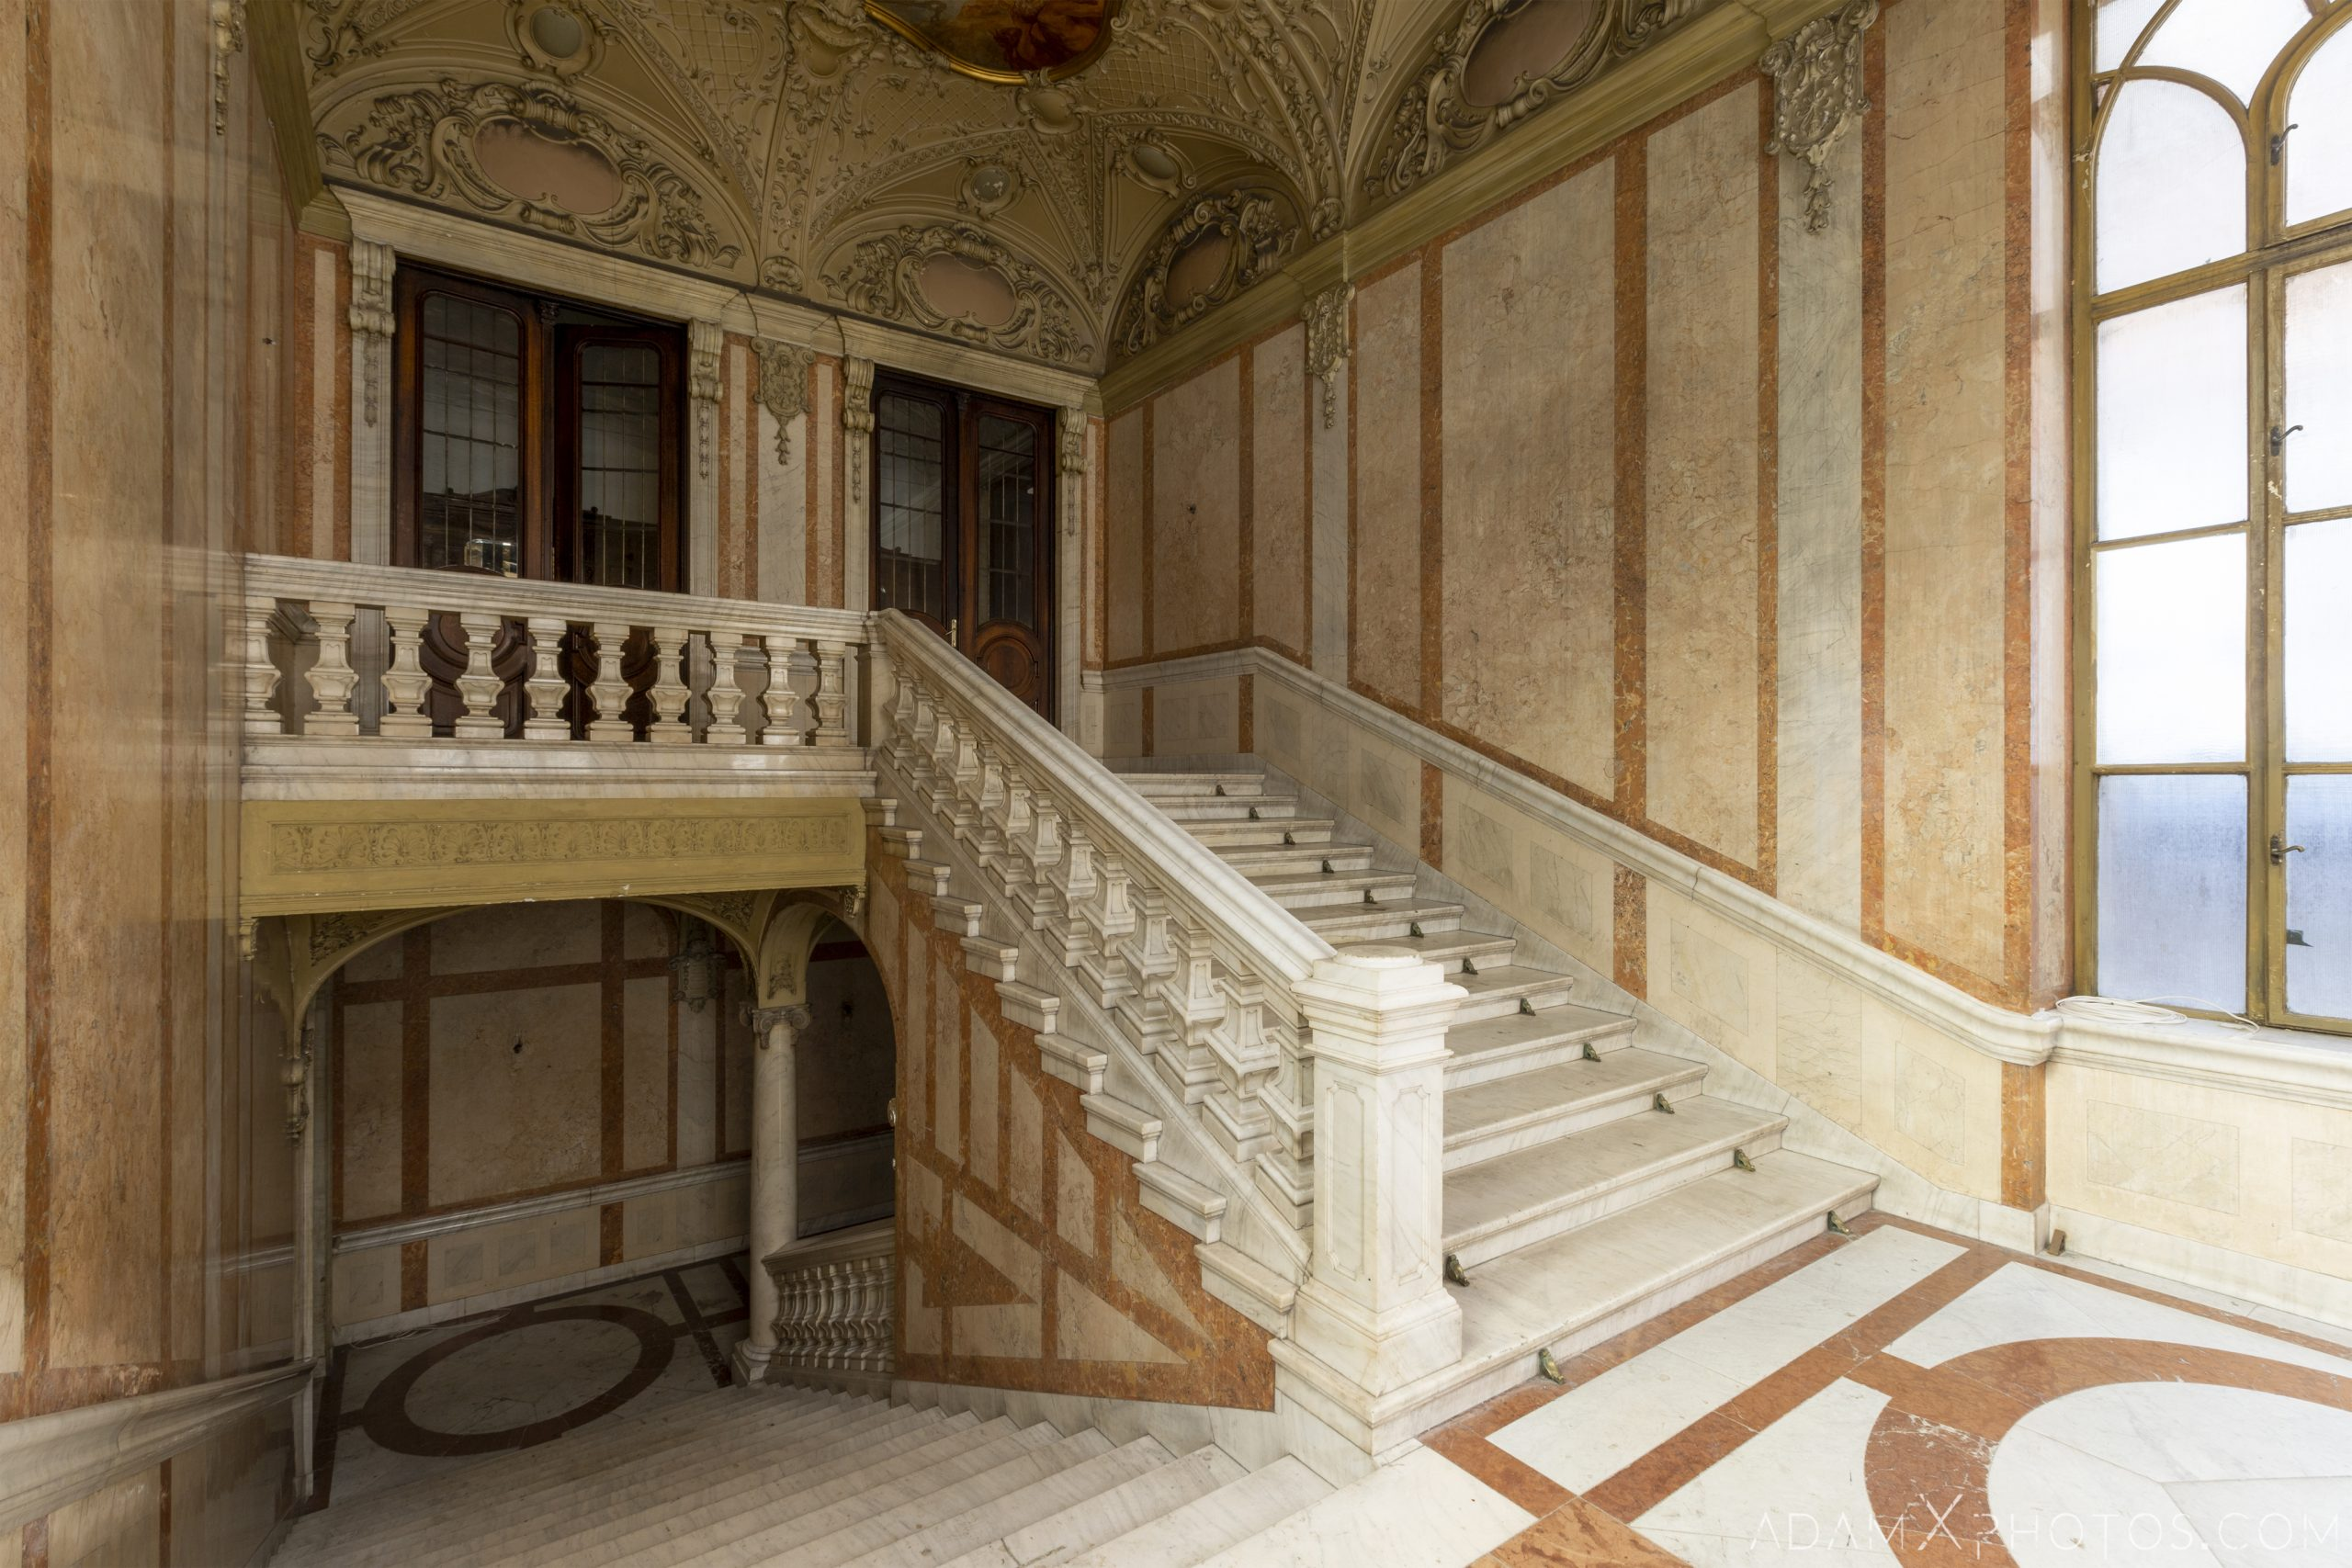 Staircase stairs Adria Palace Budapest Hungary Adam X Urbex Urban Exploration Access 2018 Blade Runner 2049 Abandoned decay ruins lost forgotten derelict location creepy haunting eerie security ornate grand neo baroque